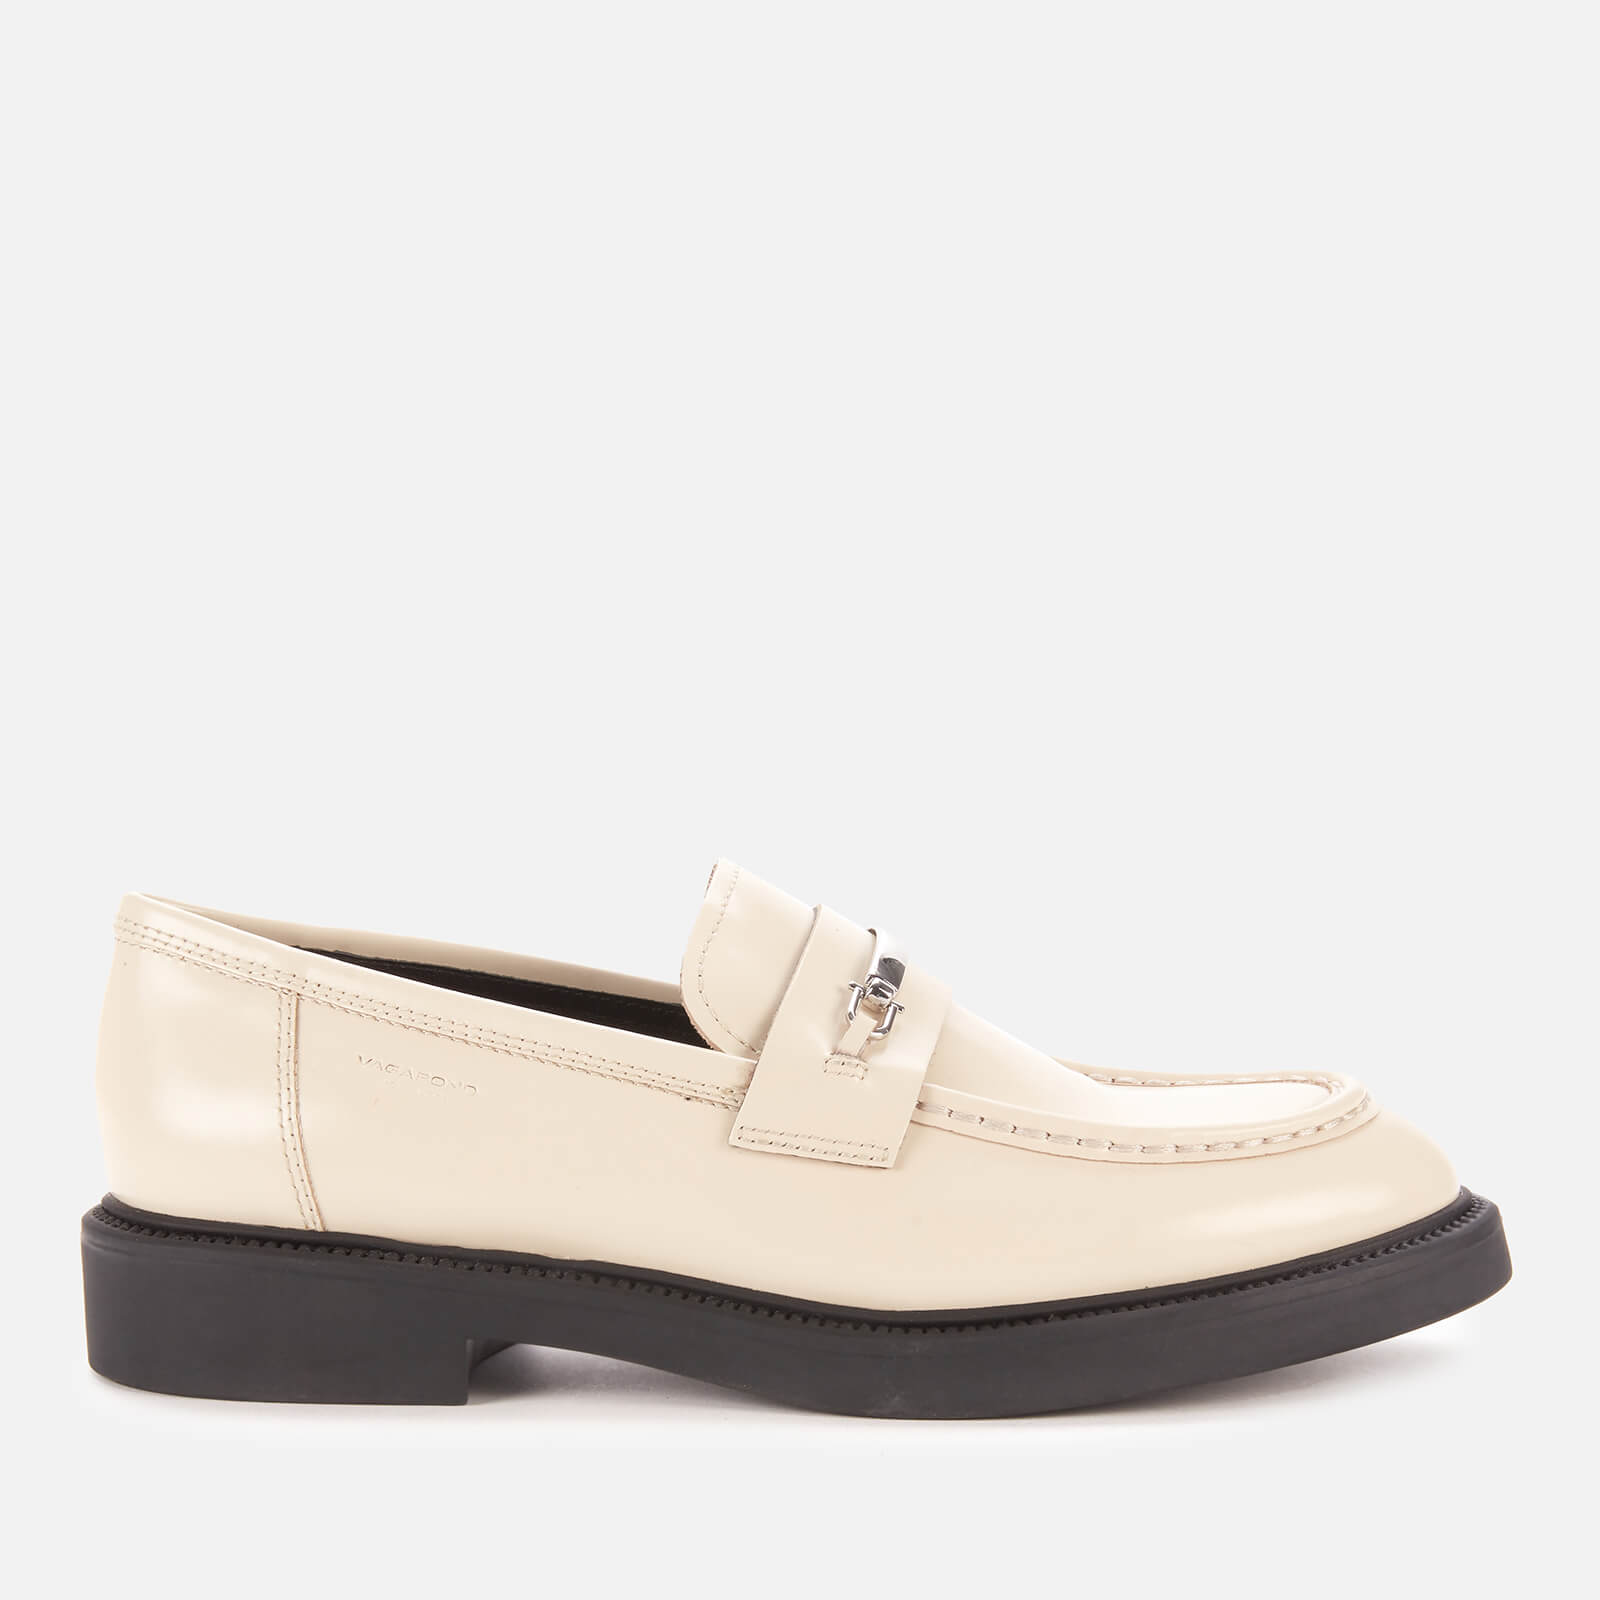 Vagabond Women's Alex W Leather Loafers - Off White - Uk 5